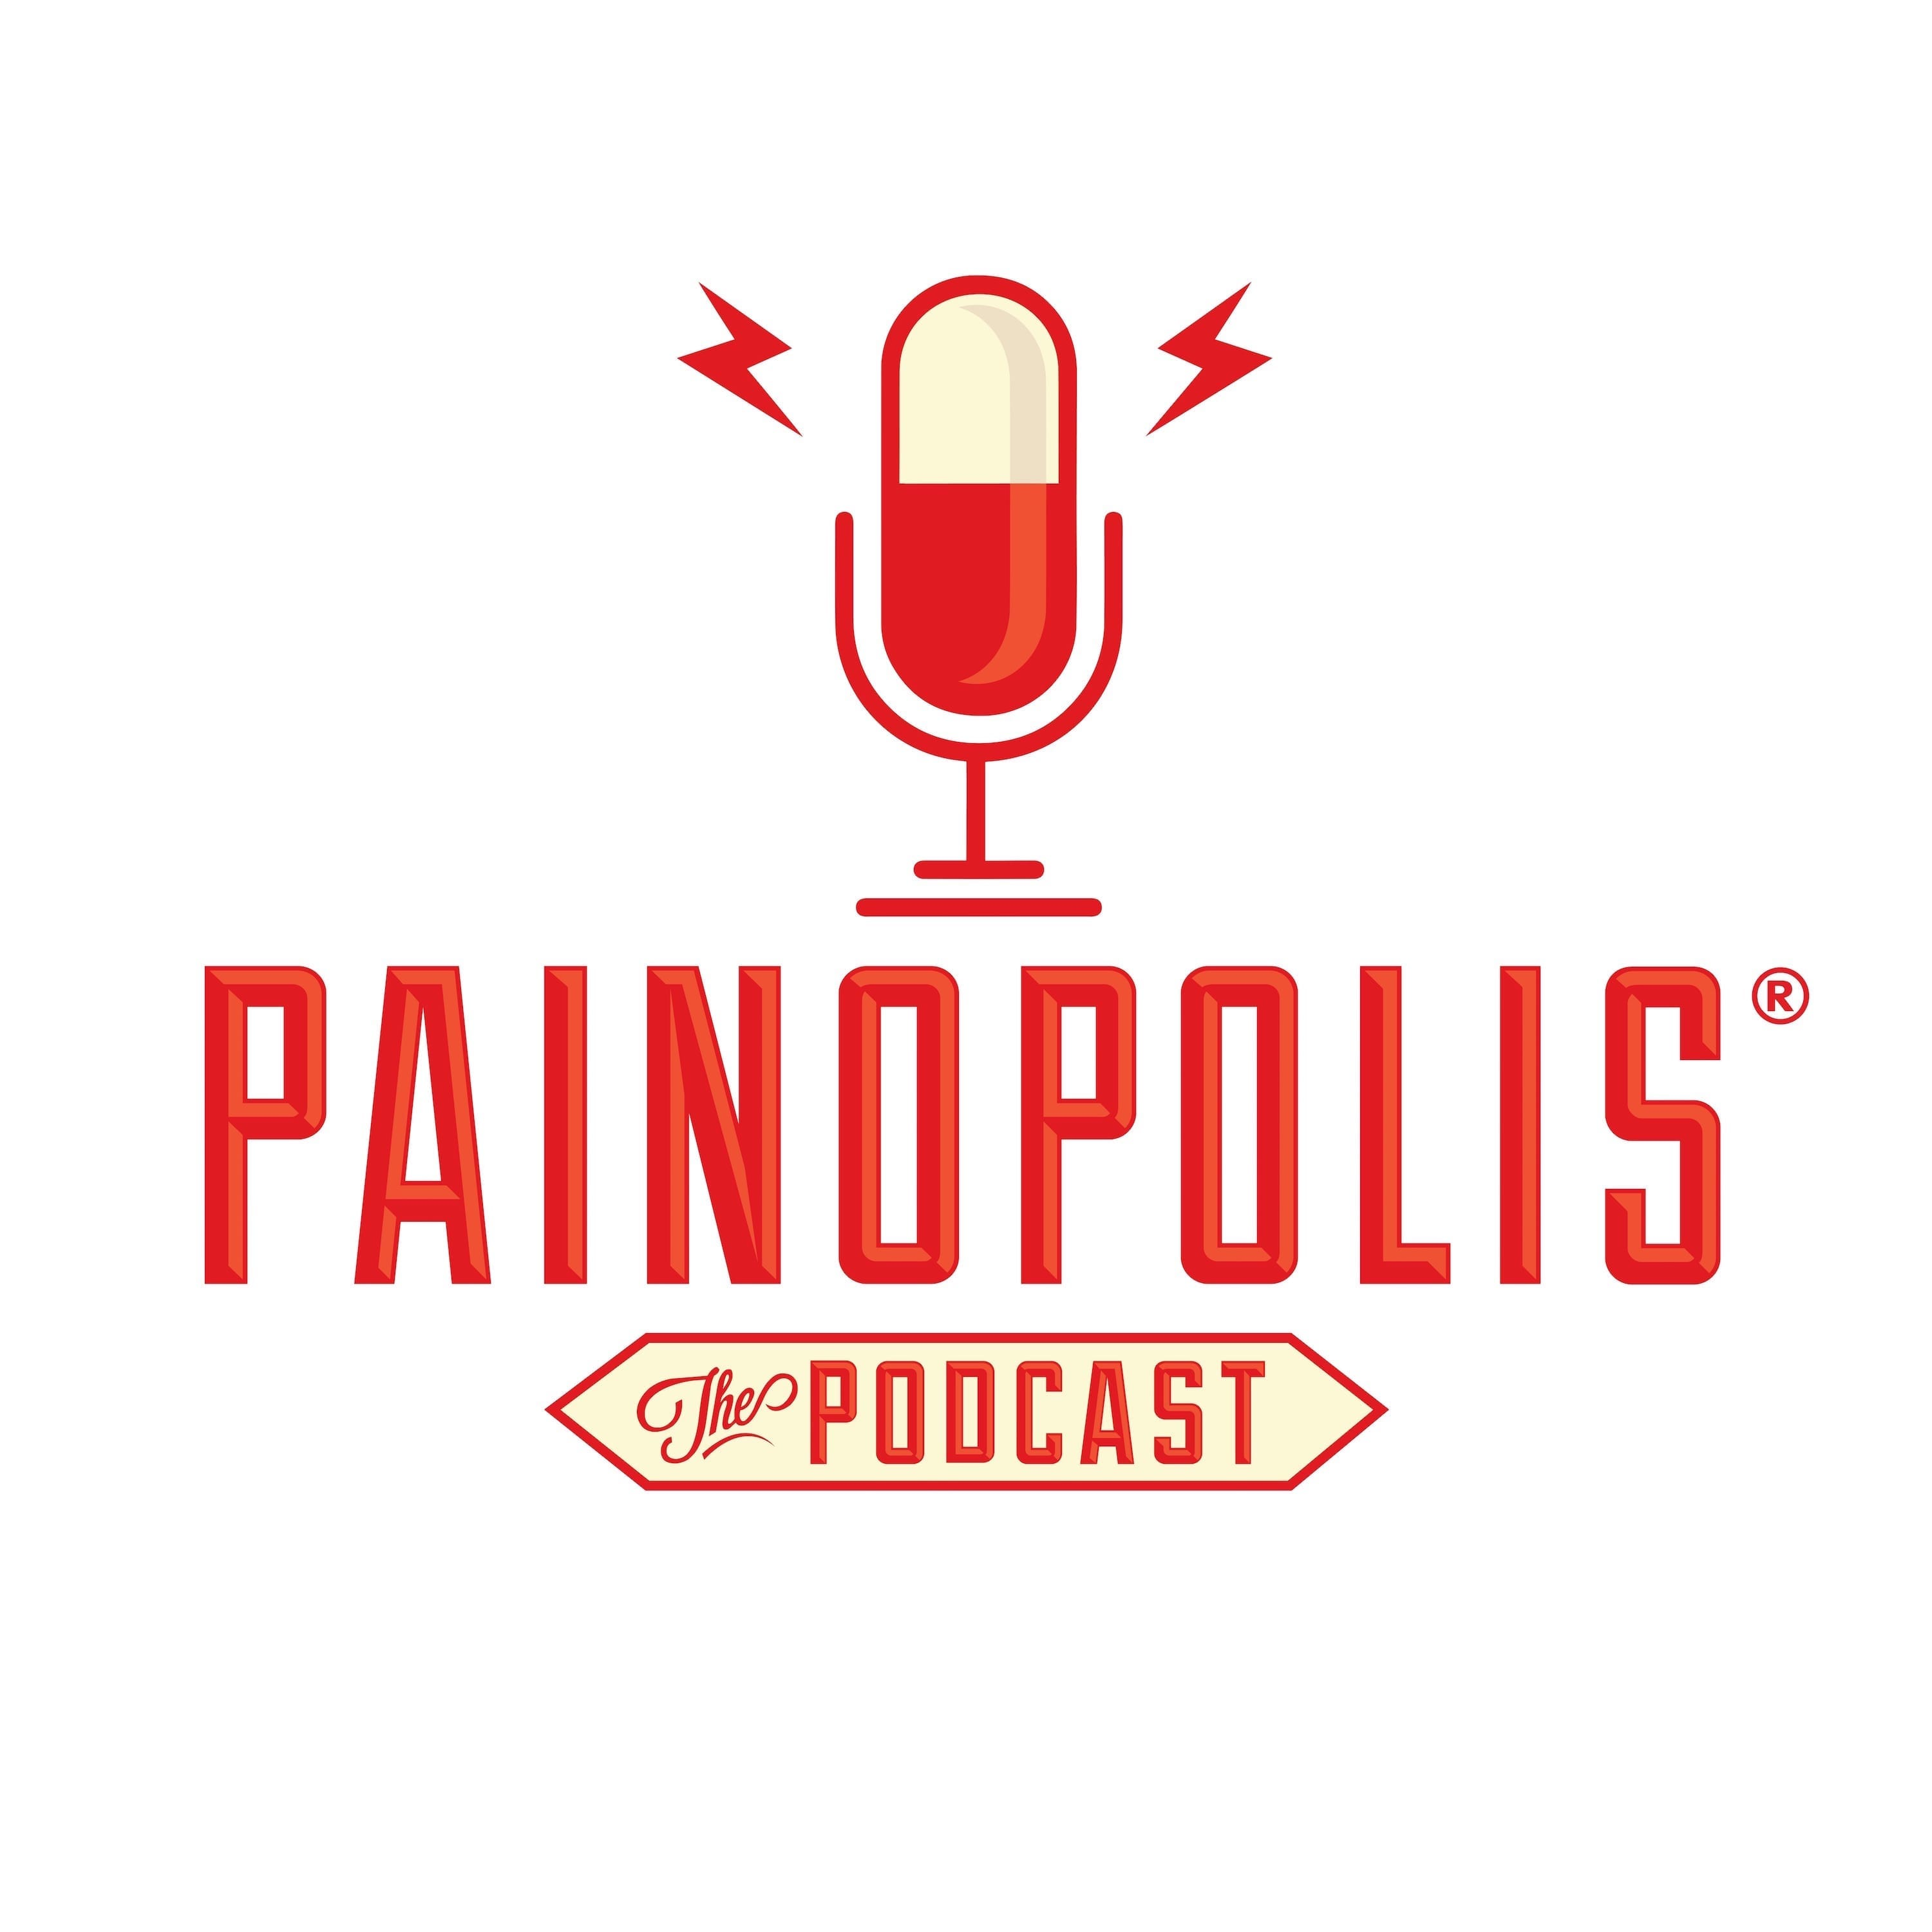 Painopolis: Prevailing against chronic pain, one defiant story at a time